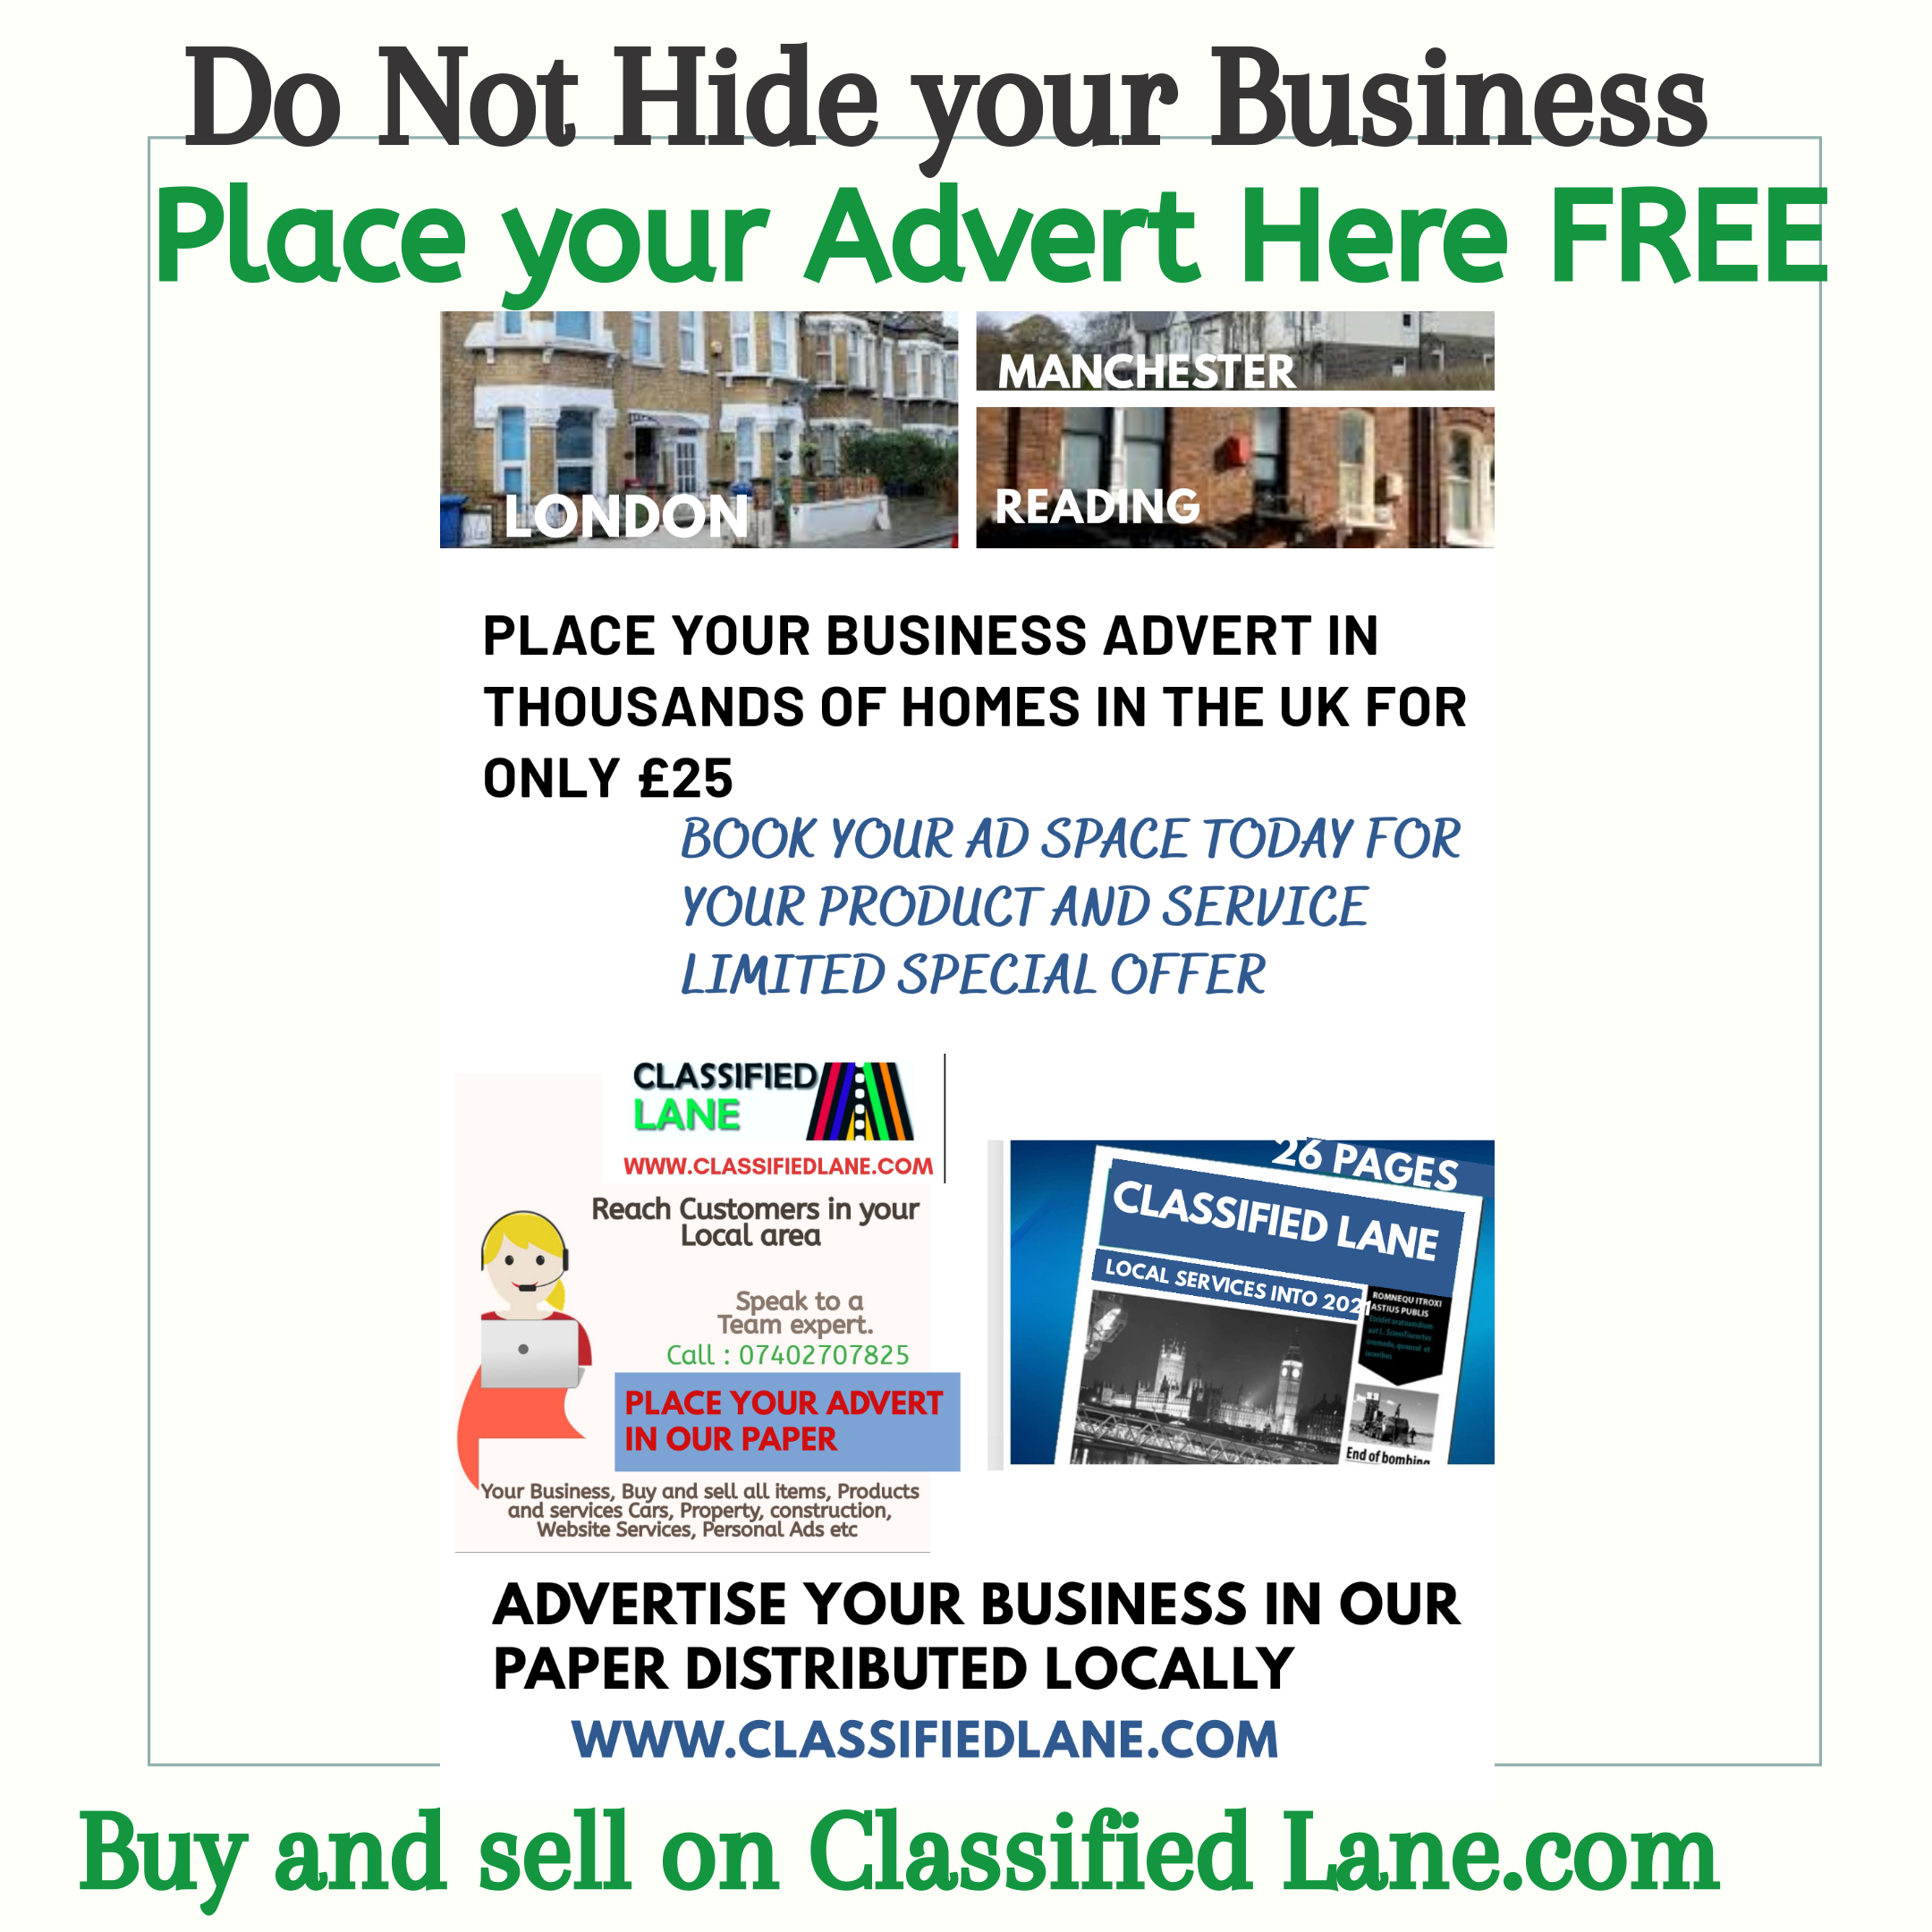 Top Advertising for Small Businesses | Running your Business with Classified Lane